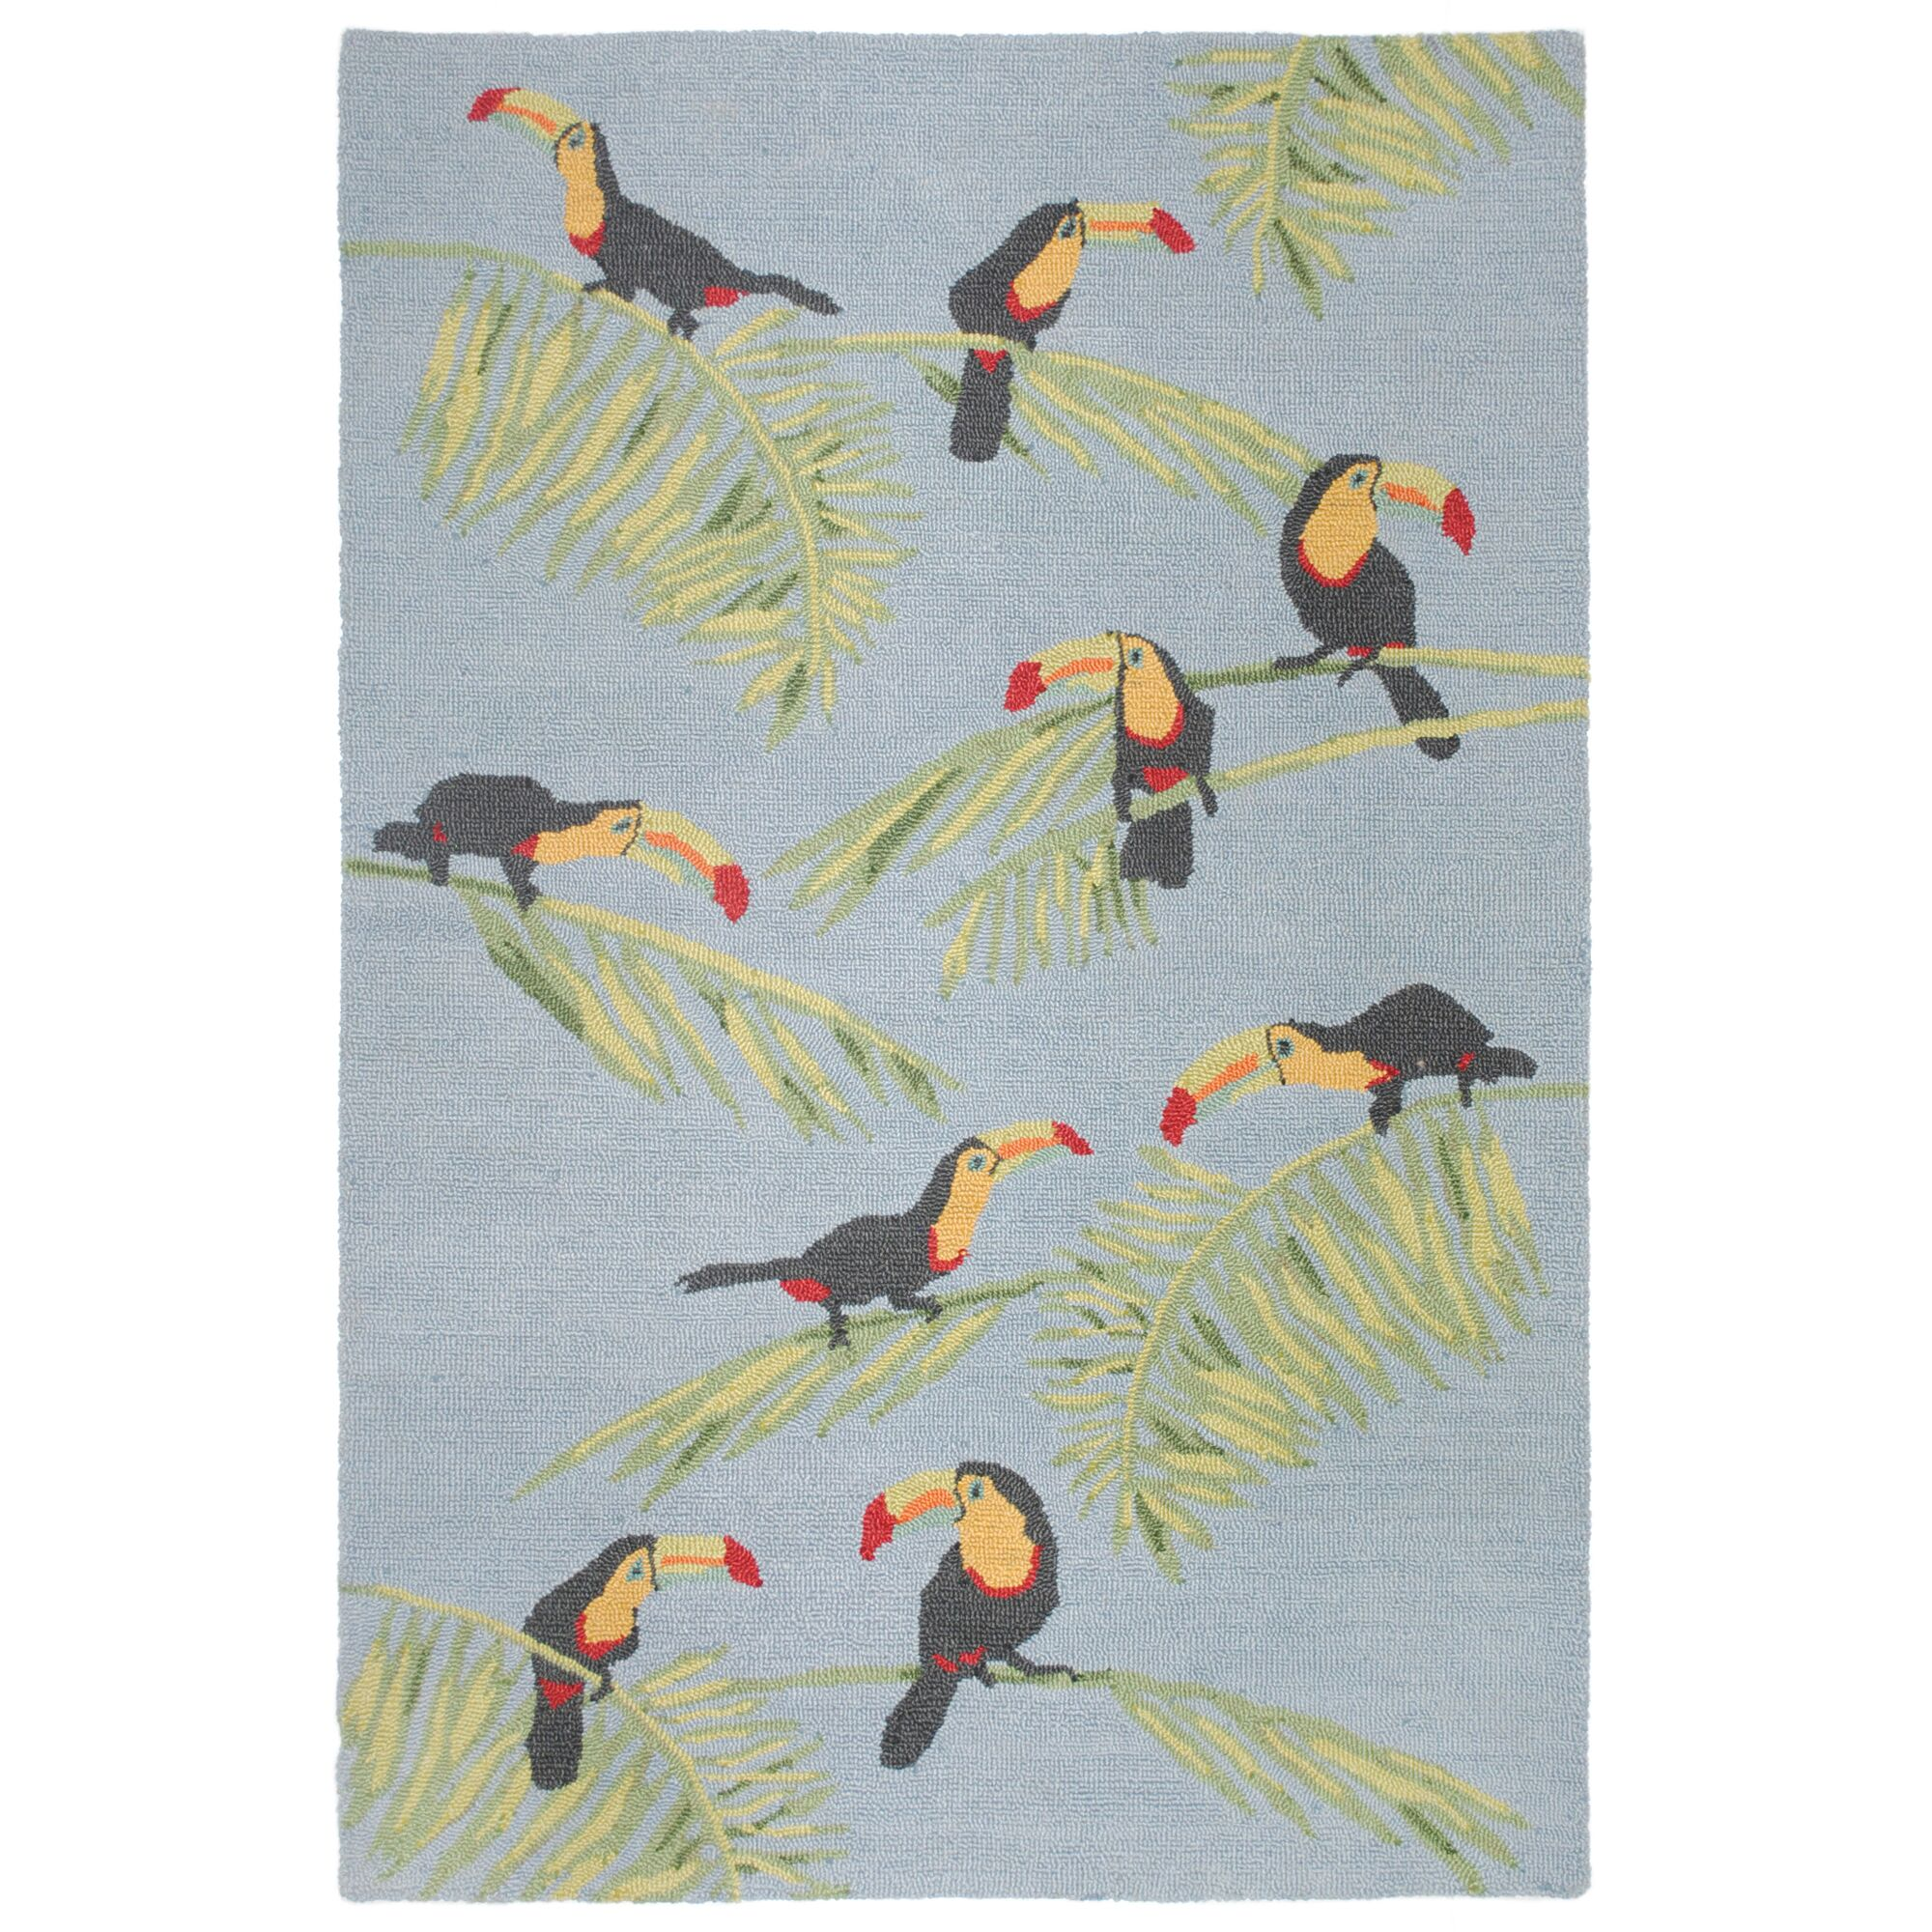 Stender Toucans Hand-Tufted Gray/Green Area Rug Rug Size: Rectangle 8'3